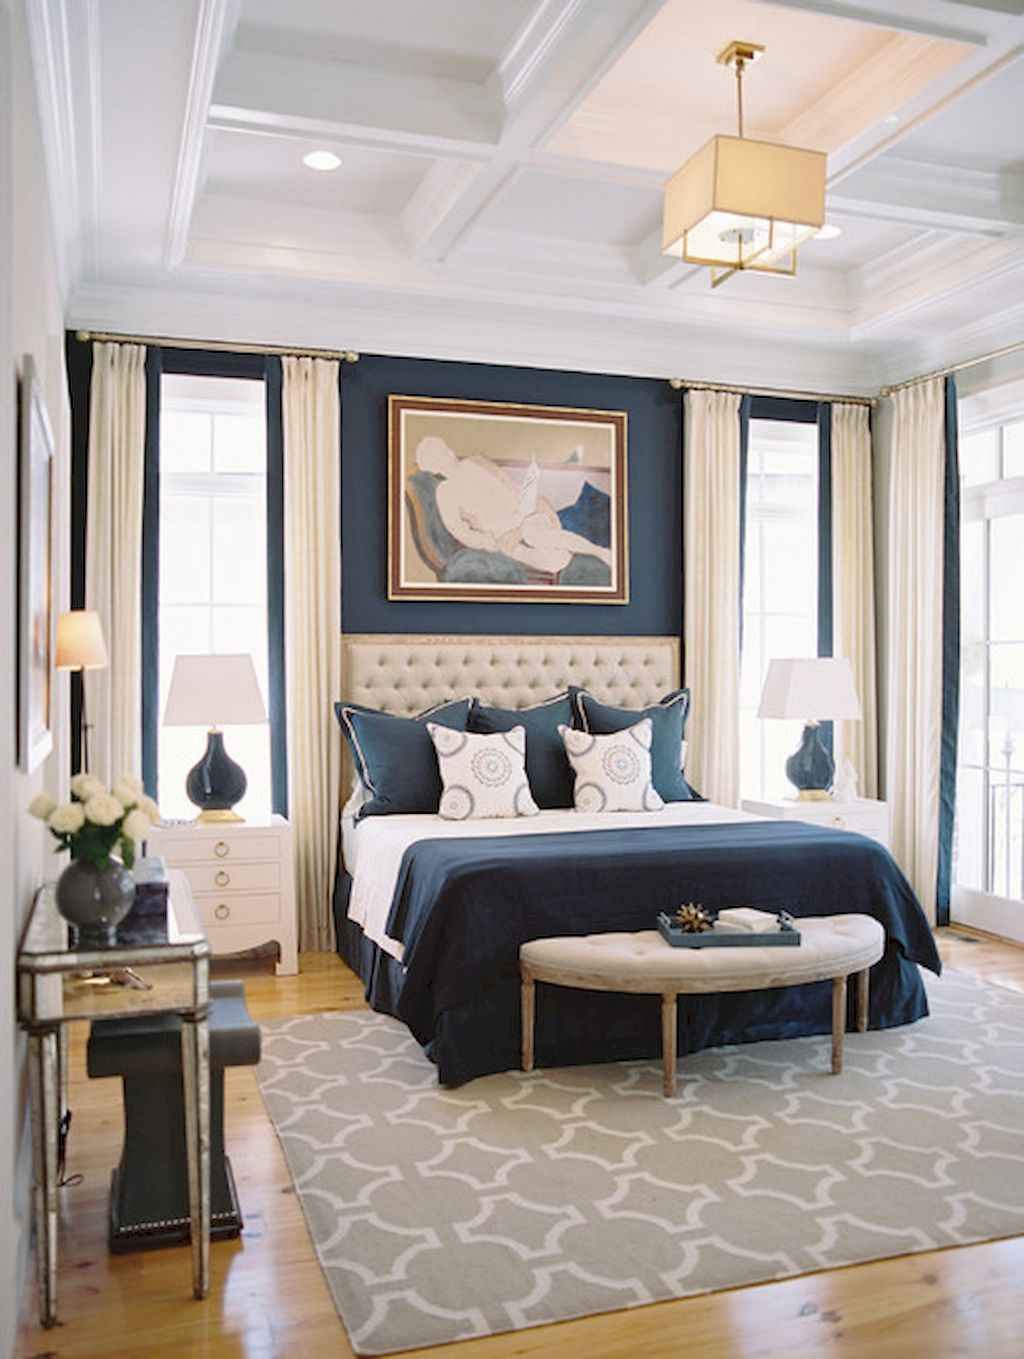 Beautiful Relaxing Master Bedroom Decorating Ideas Images Decorating Interior Design